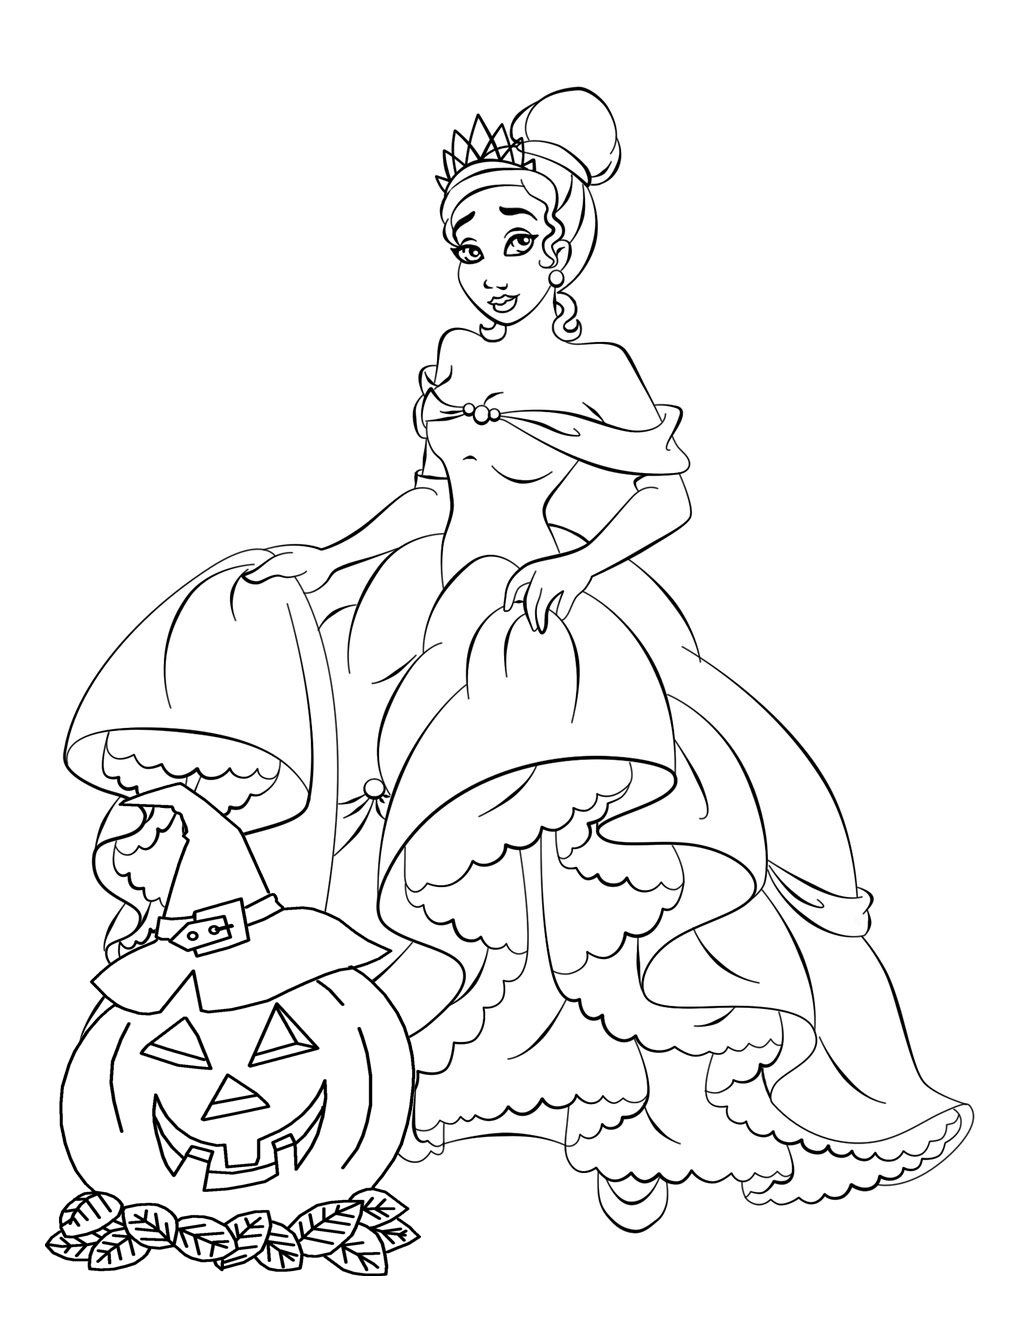 Free Disney Halloween Coloring Pages | Disney Halloween | Pinterest ...